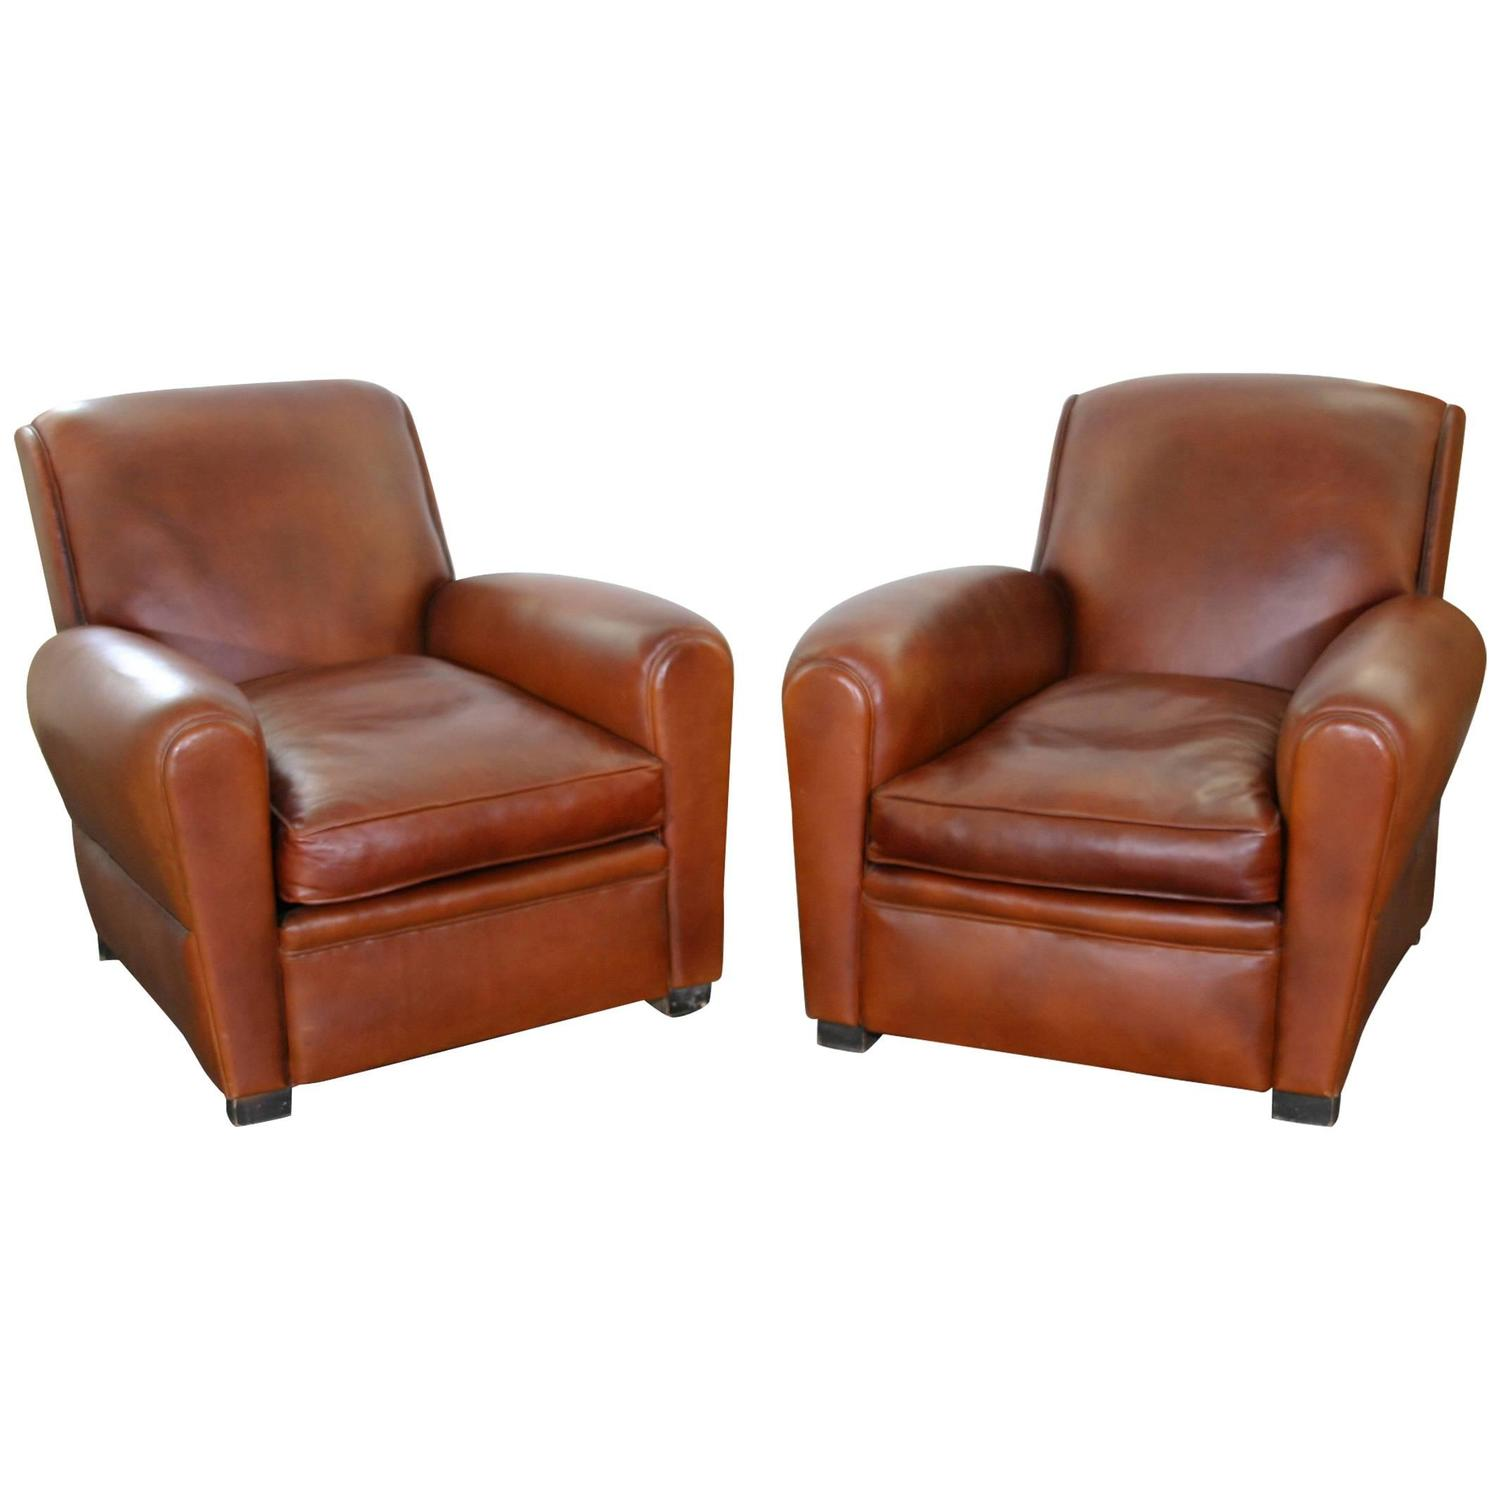 leather club chairs for sale baby bumbo chair pair of at 1stdibs